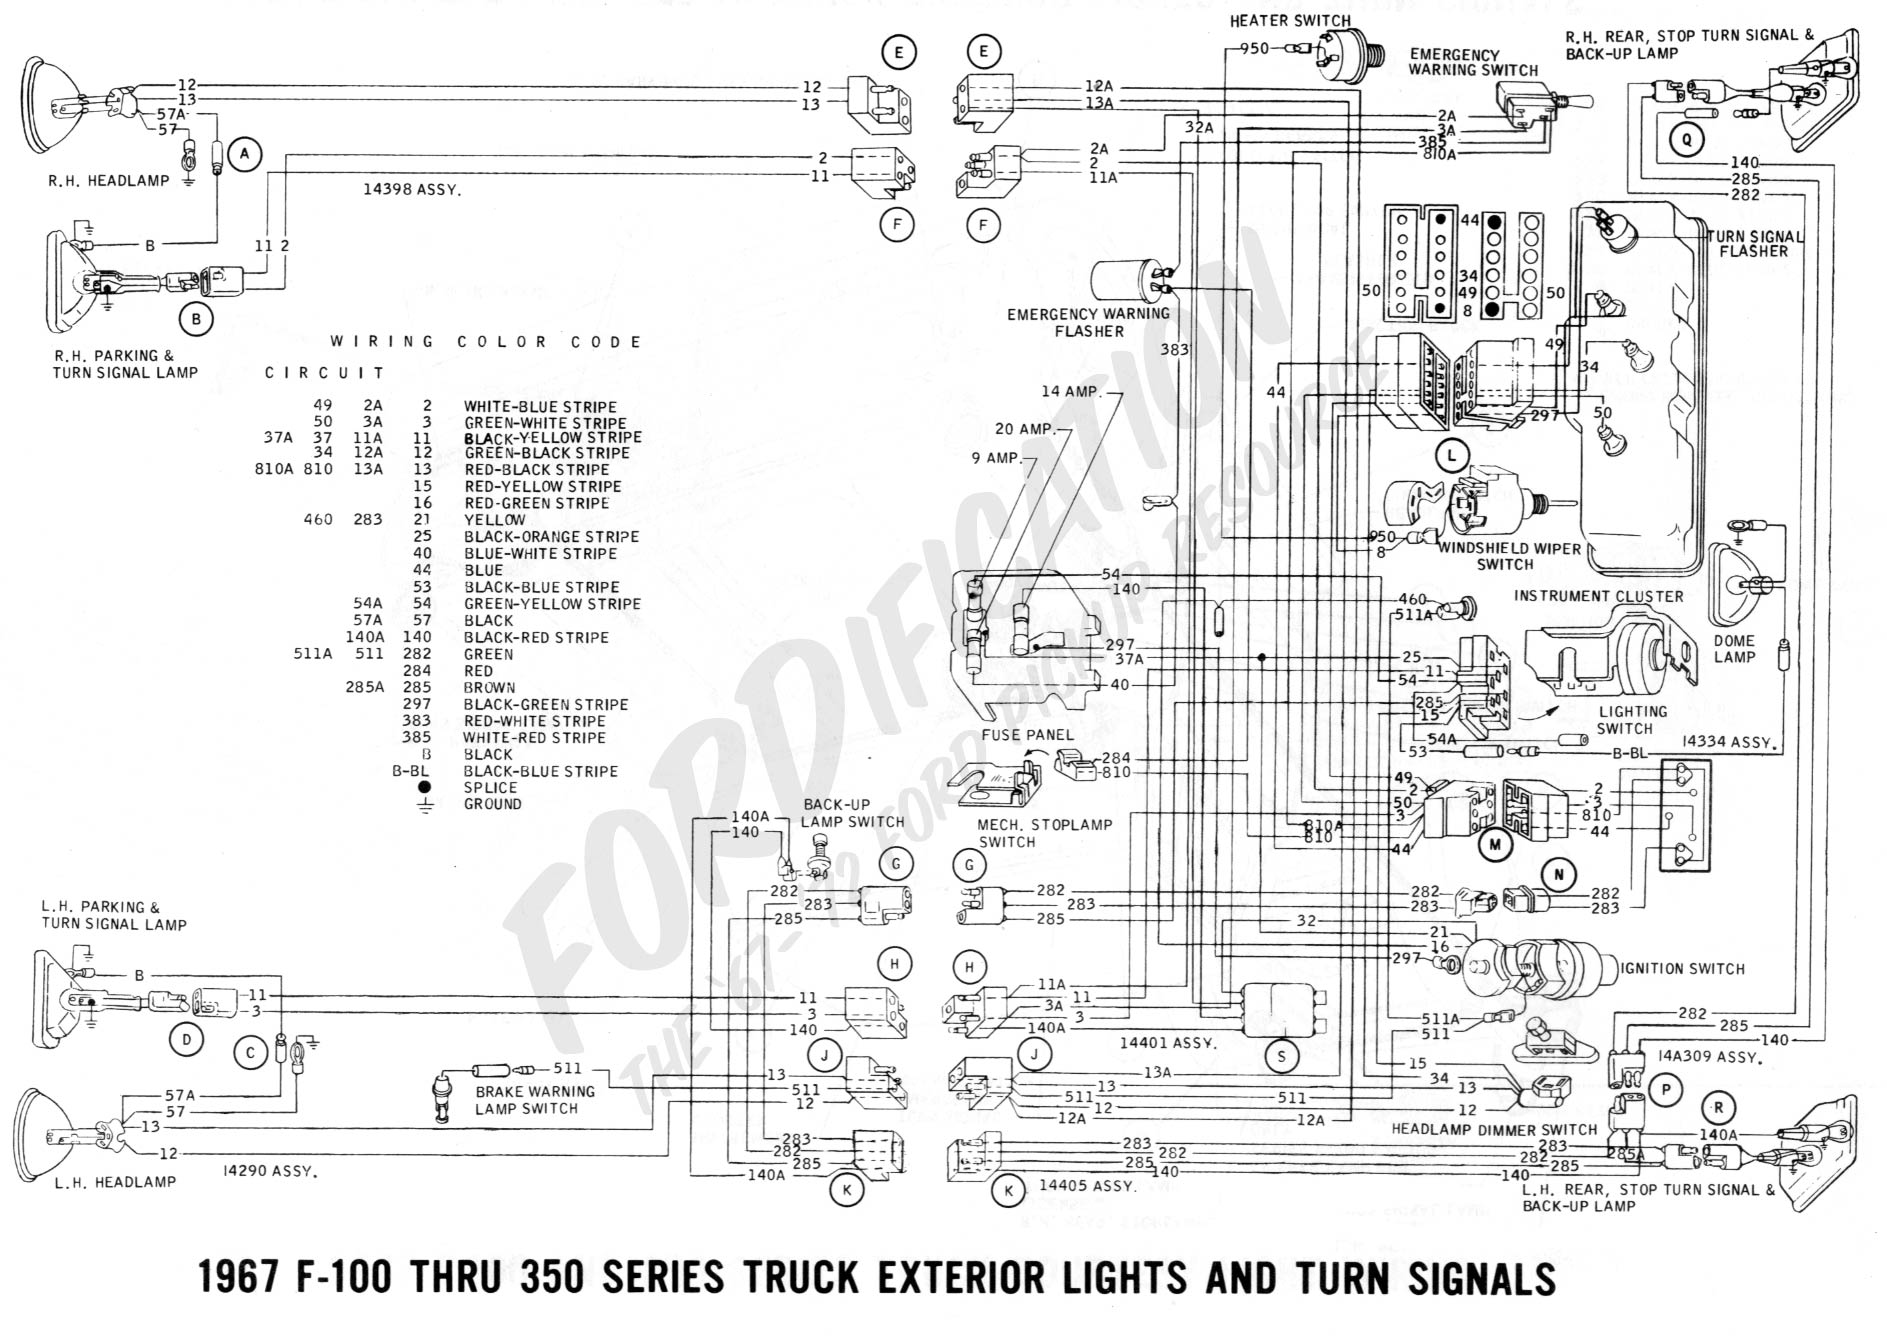 Alternator Wiring Diagram 2006 Ford Truck Archive Of Automotive F350 Simple Rh David Huggett Co Uk